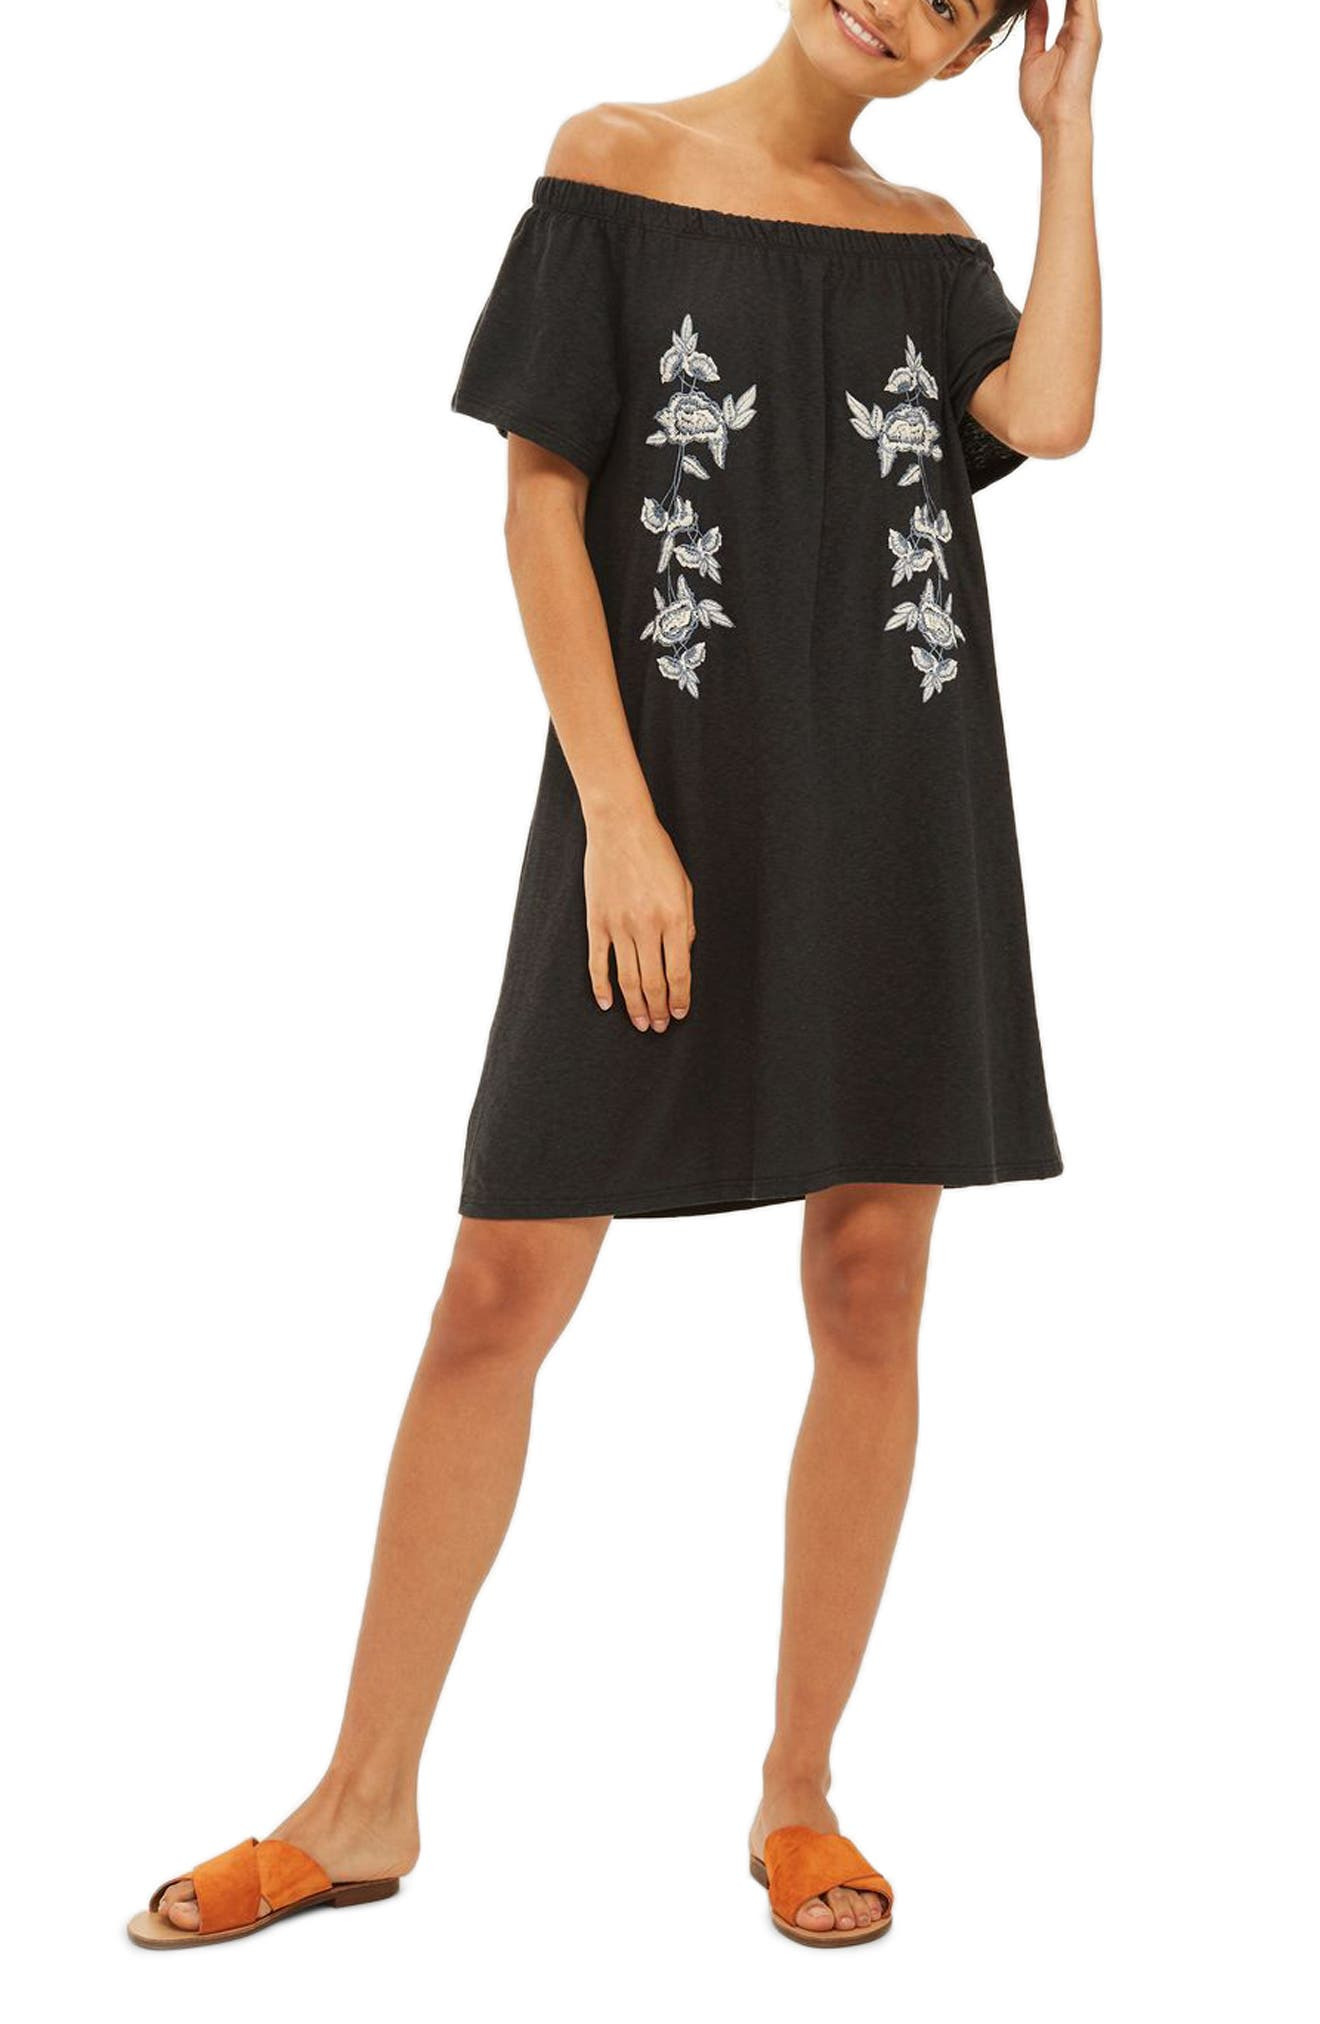 Topshop Embroidered Off the Shoulder Dress